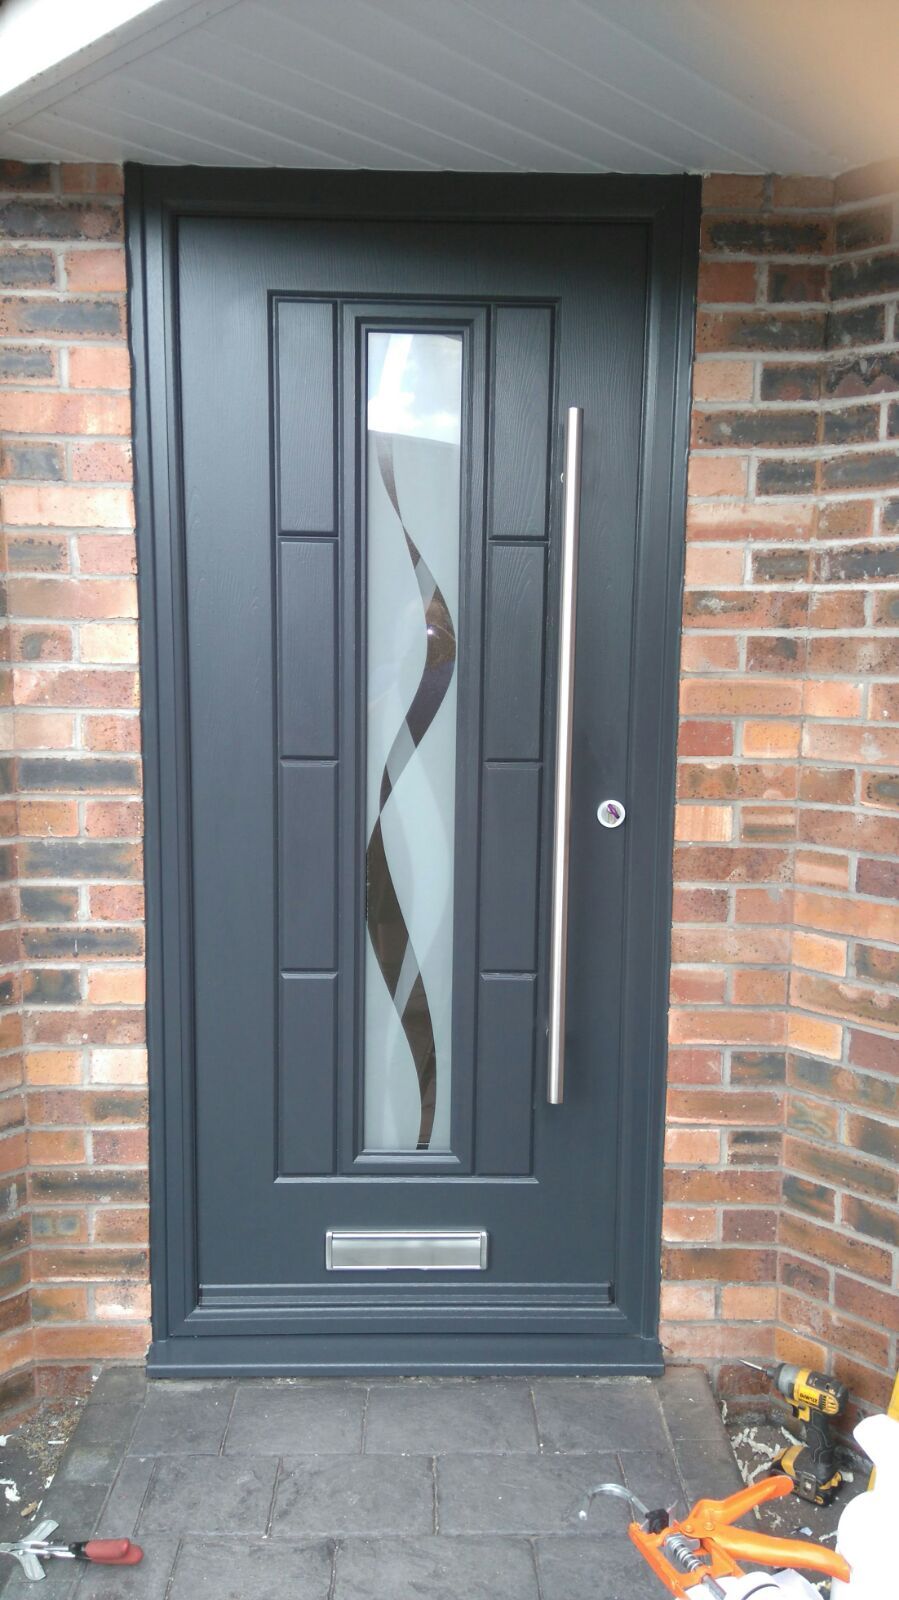 Cds The Leading Rockdoor Specialists